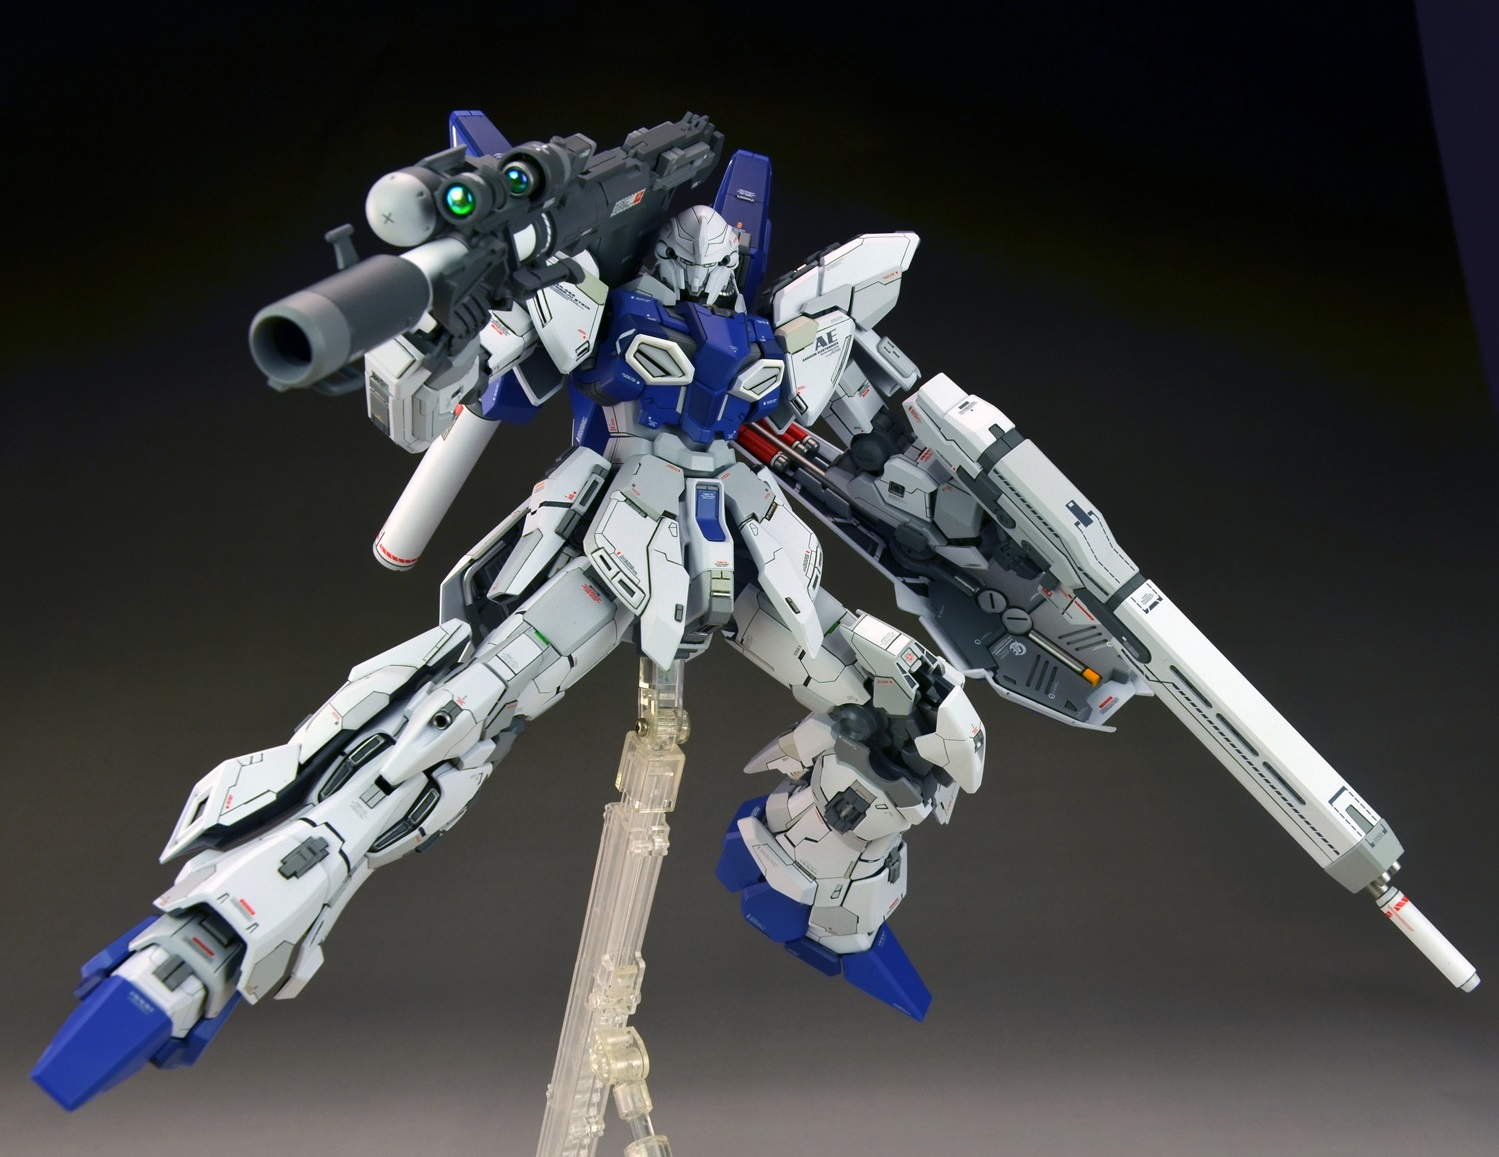 pjj8327's Latest IMPROVED WORK: MG 1/100 SINANJU STEIN Ver ...